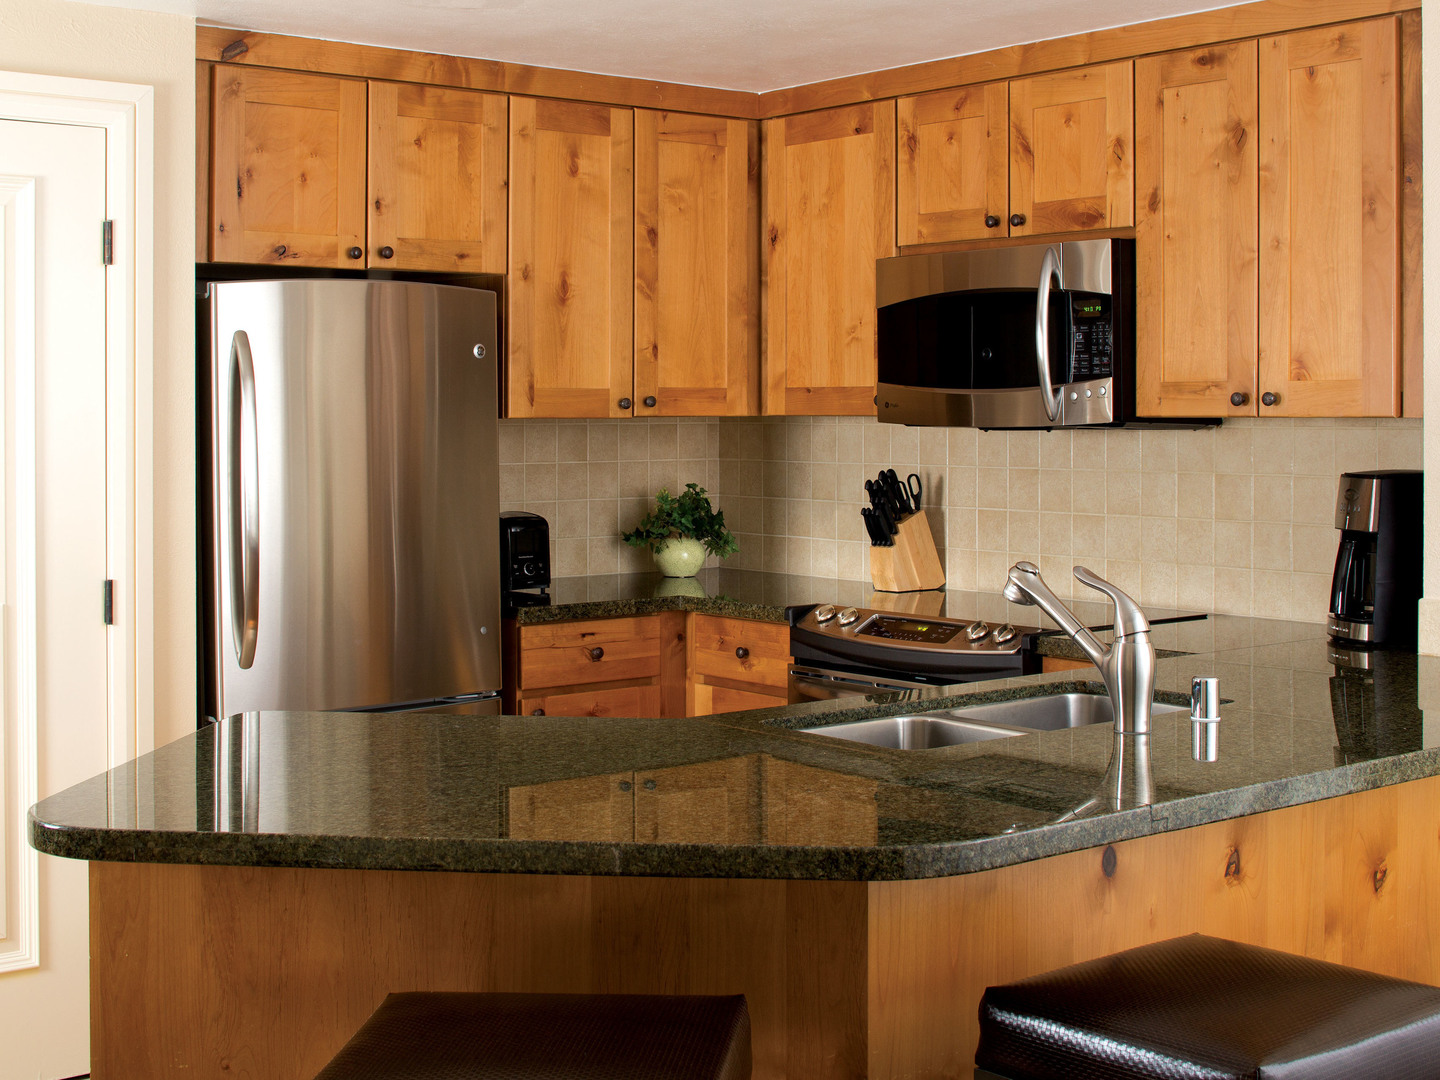 Marriott's Timber Lodge<span class='trademark'>®</span> Villa Kitchen. Marriott's Timber Lodge<span class='trademark'>®</span> is located in South Lake Tahoe, California United States.